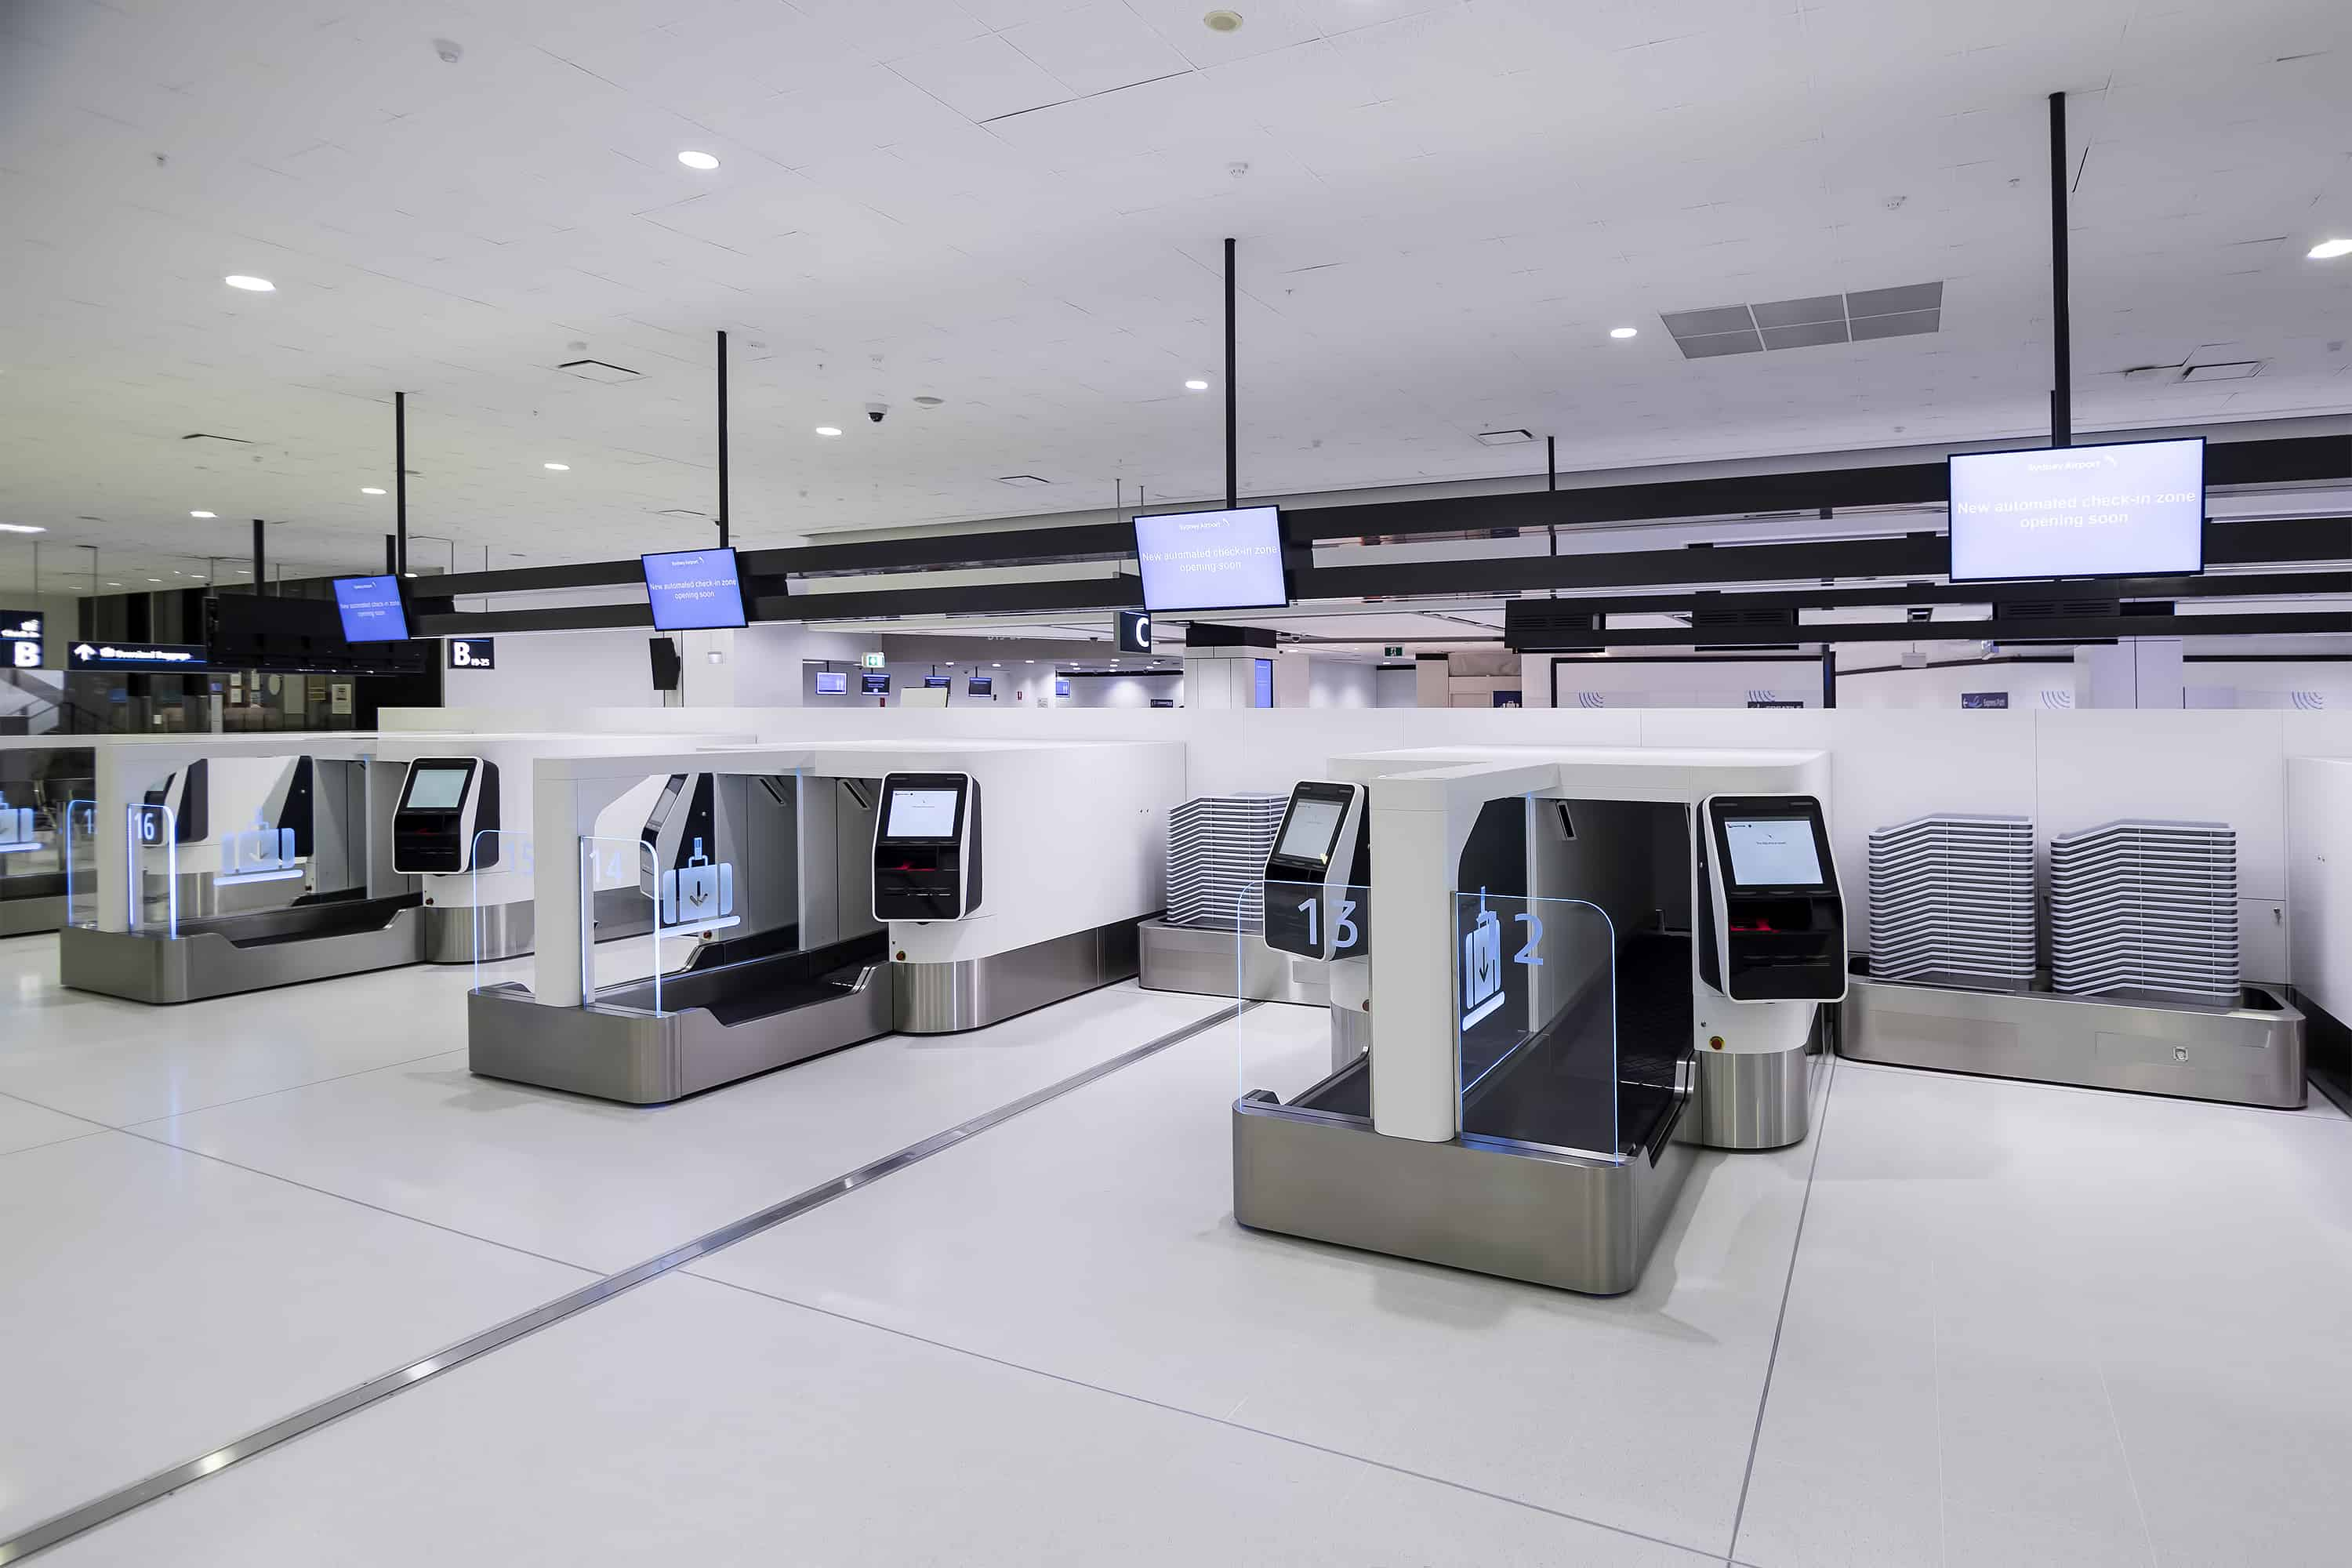 Sydney Airport's T1 International now live with ICM's Auto Bag Drop units and check-in kiosk software